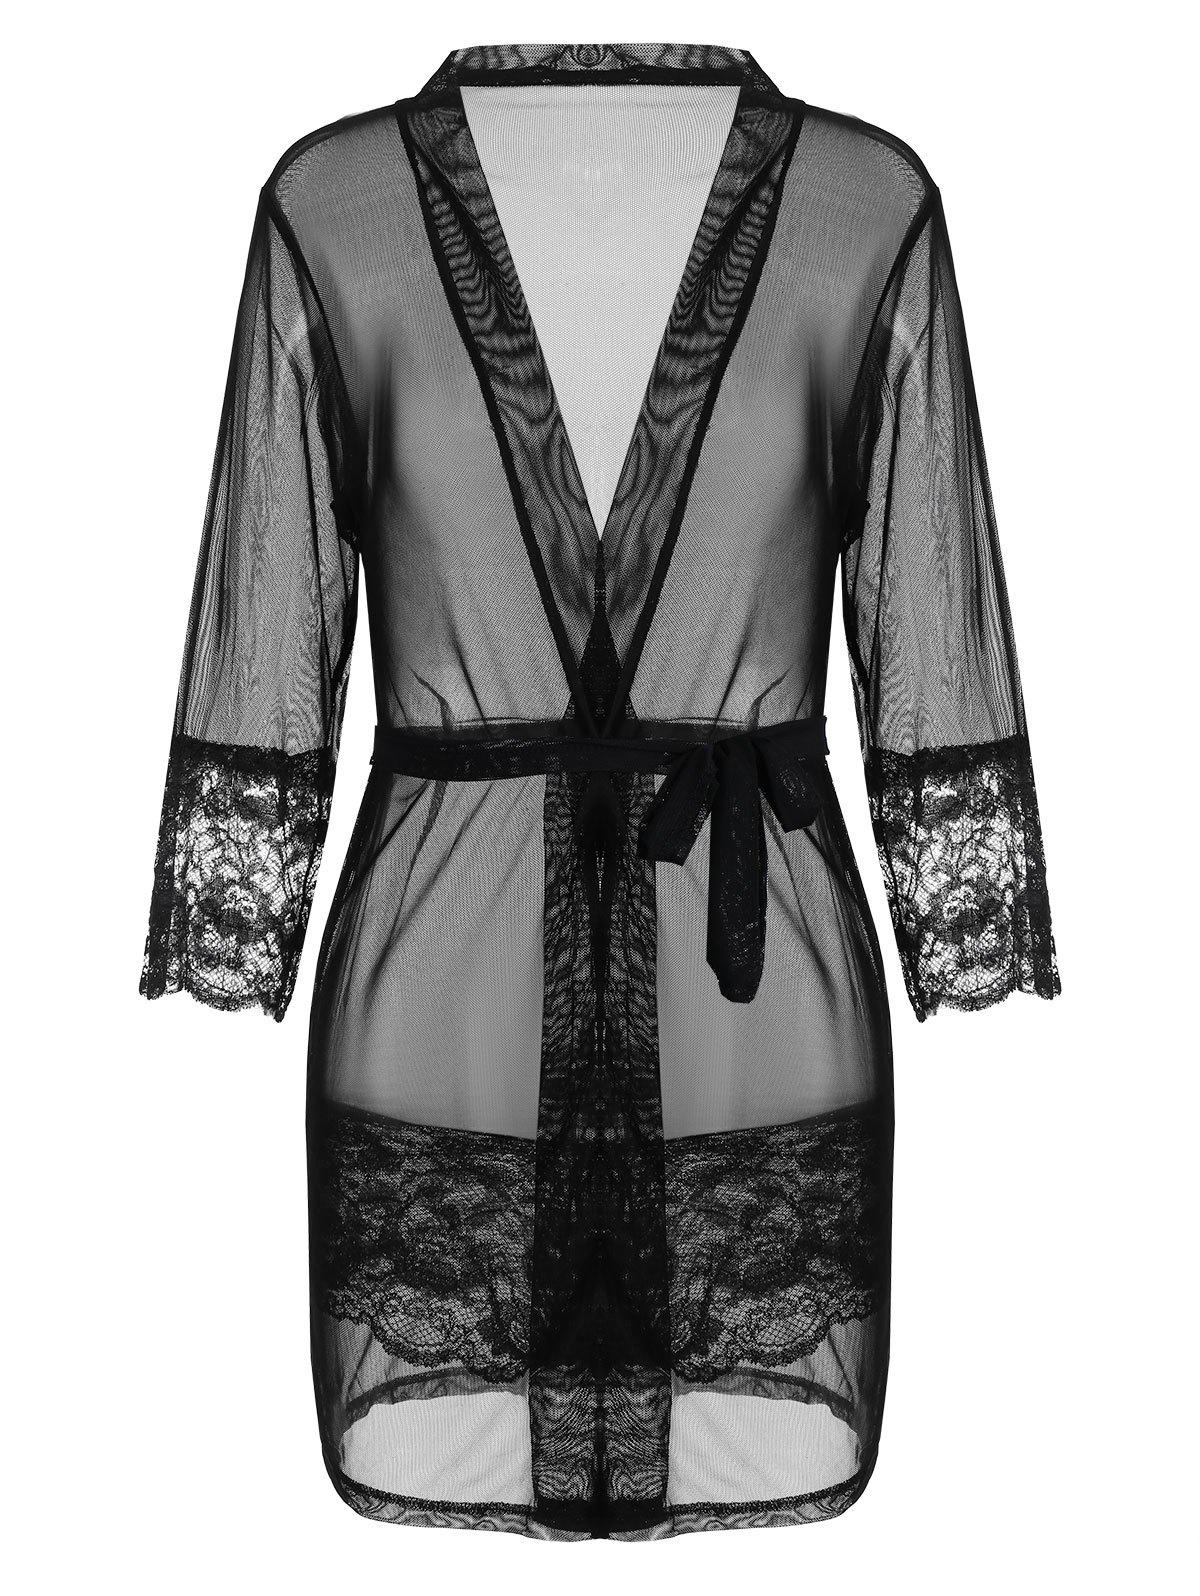 See Thru Mesh Wrap SleepwearWOMEN<br><br>Size: ONE SIZE; Color: BLACK; Material: Polyester; Pattern Type: Solid; Weight: 0.1900kg; Package Contents: 1 x Sleepwear  1 x Briefs  1 x Belt;